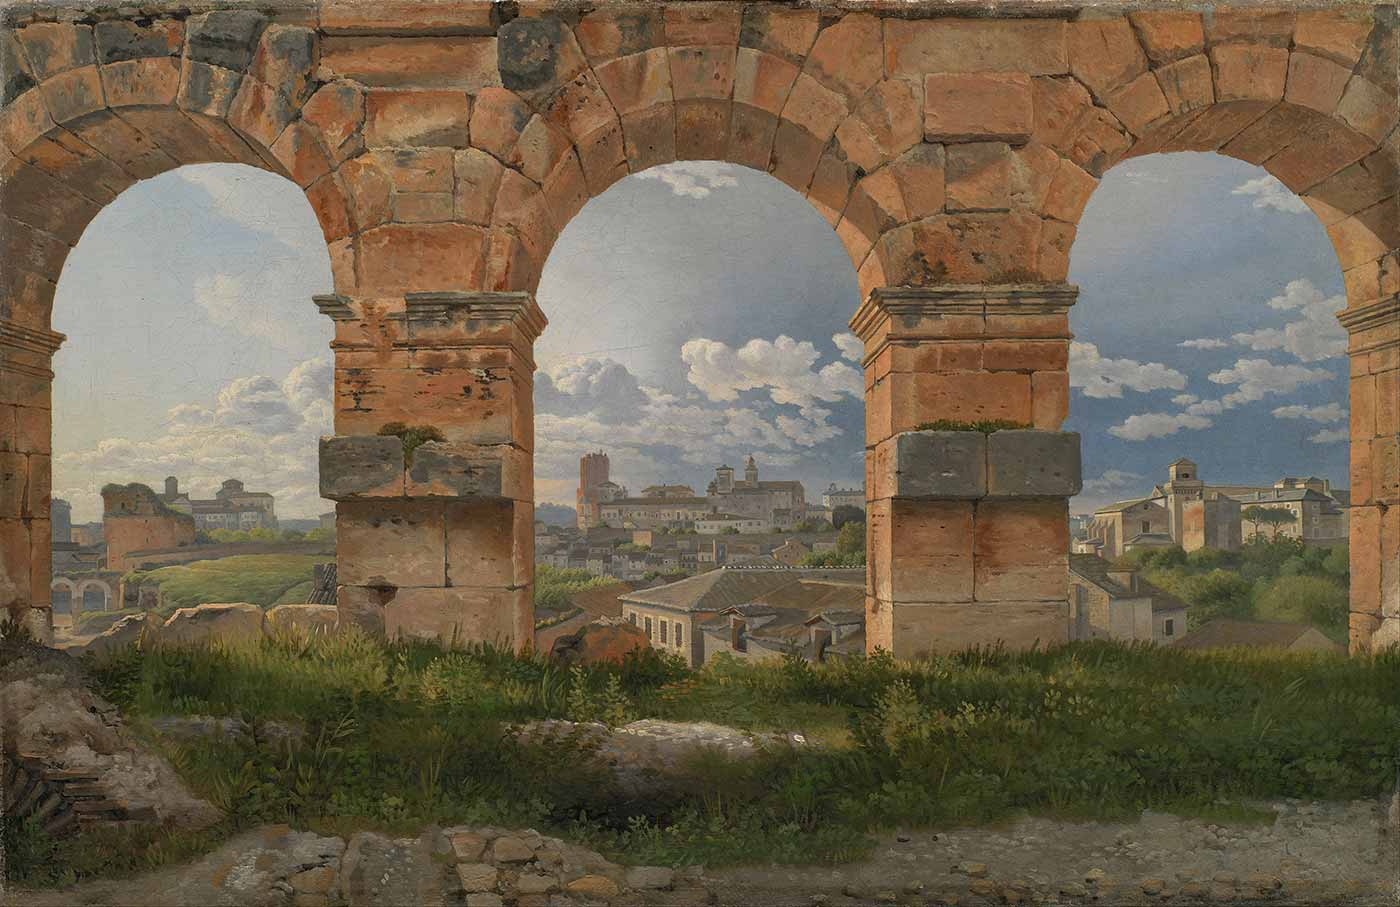 """""""A View Through Three Arches of the Third Storey of the Colosseum,"""" by C.W. Eckersberg (1815)"""